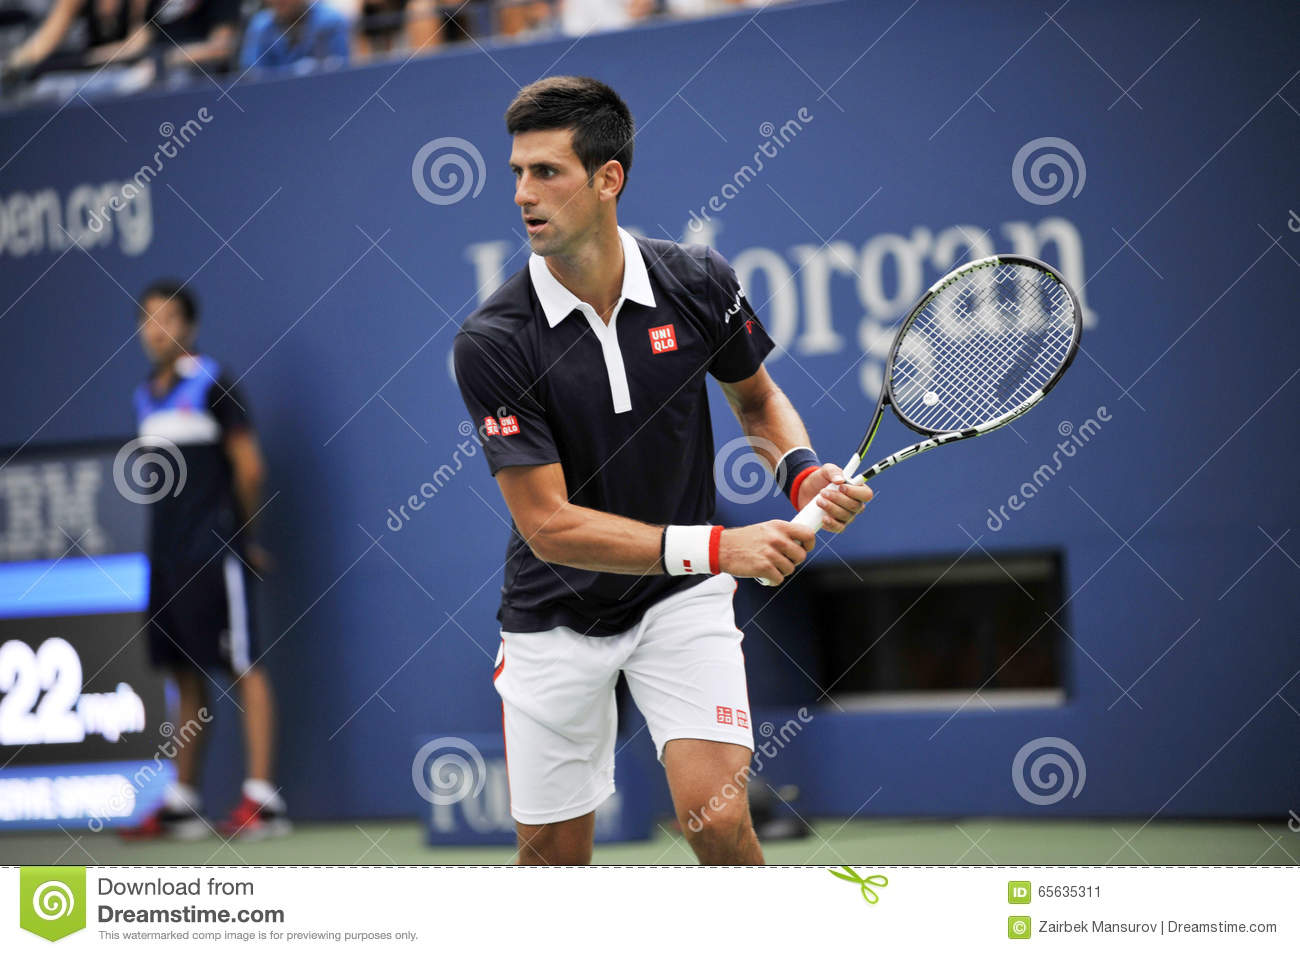 US Open 2015 (58) de Djokovic Novak